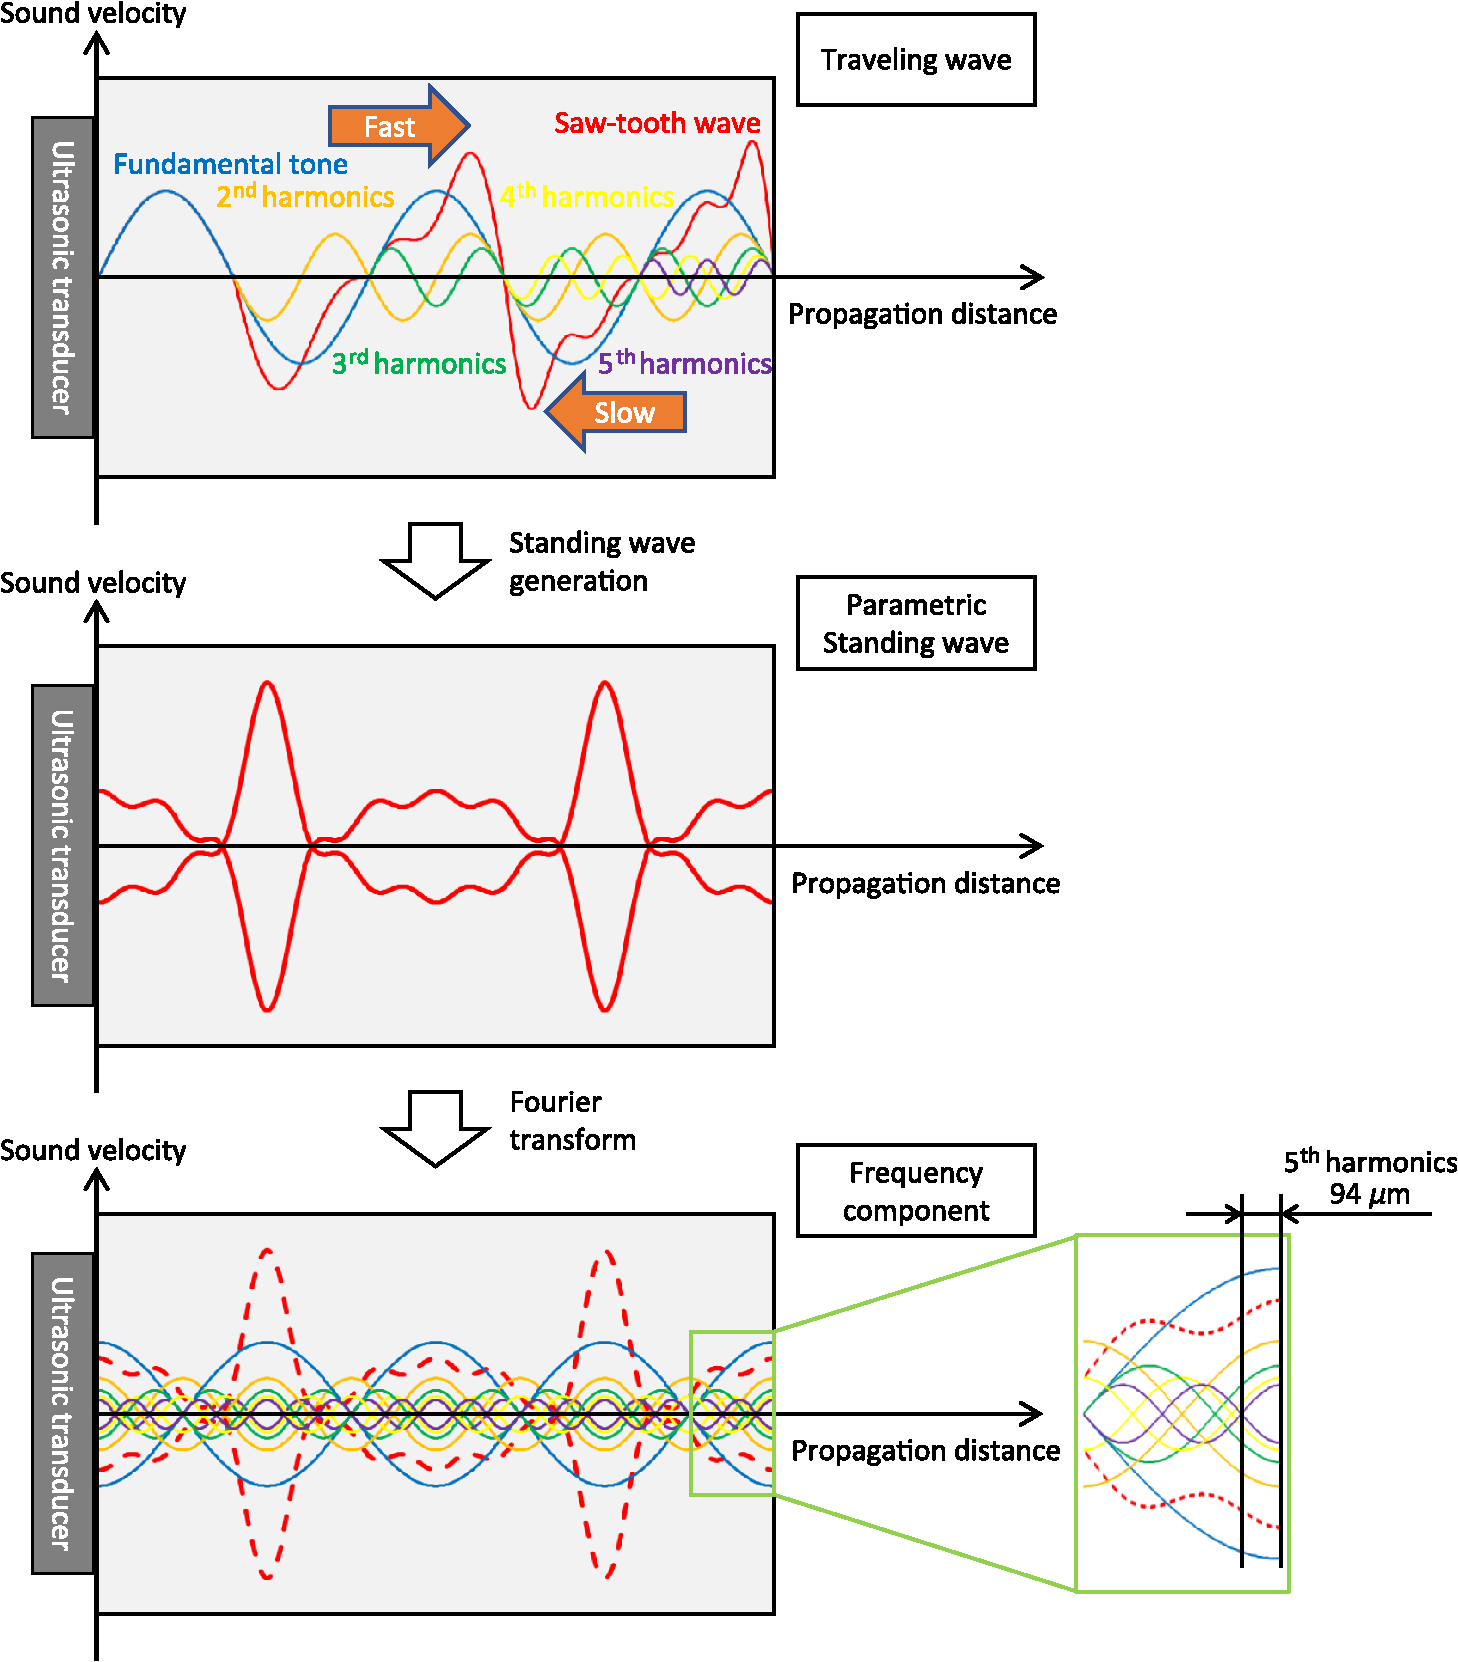 Parametric standing wave generation of a shallow reflection plane in